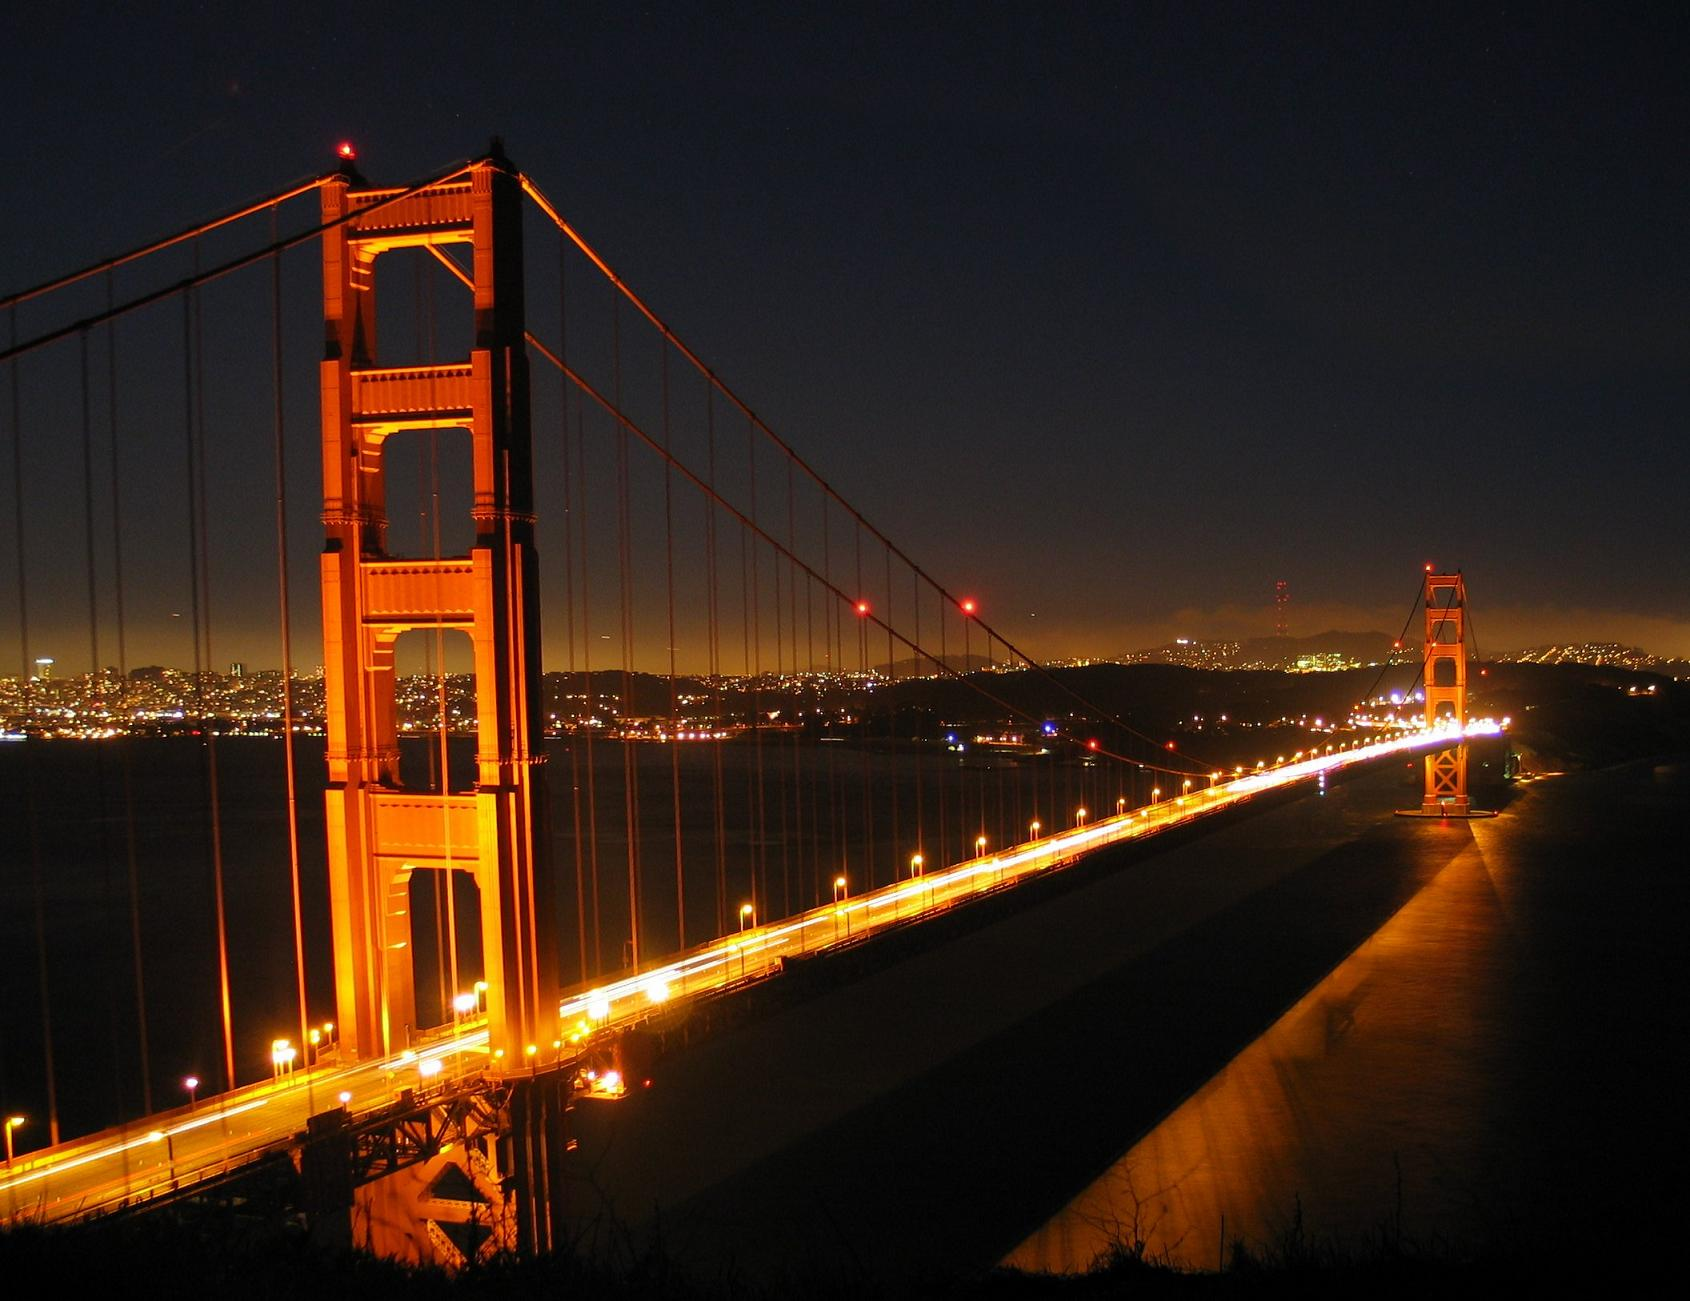 The original plans for the Golden Gate Bridge were rejected for 1229